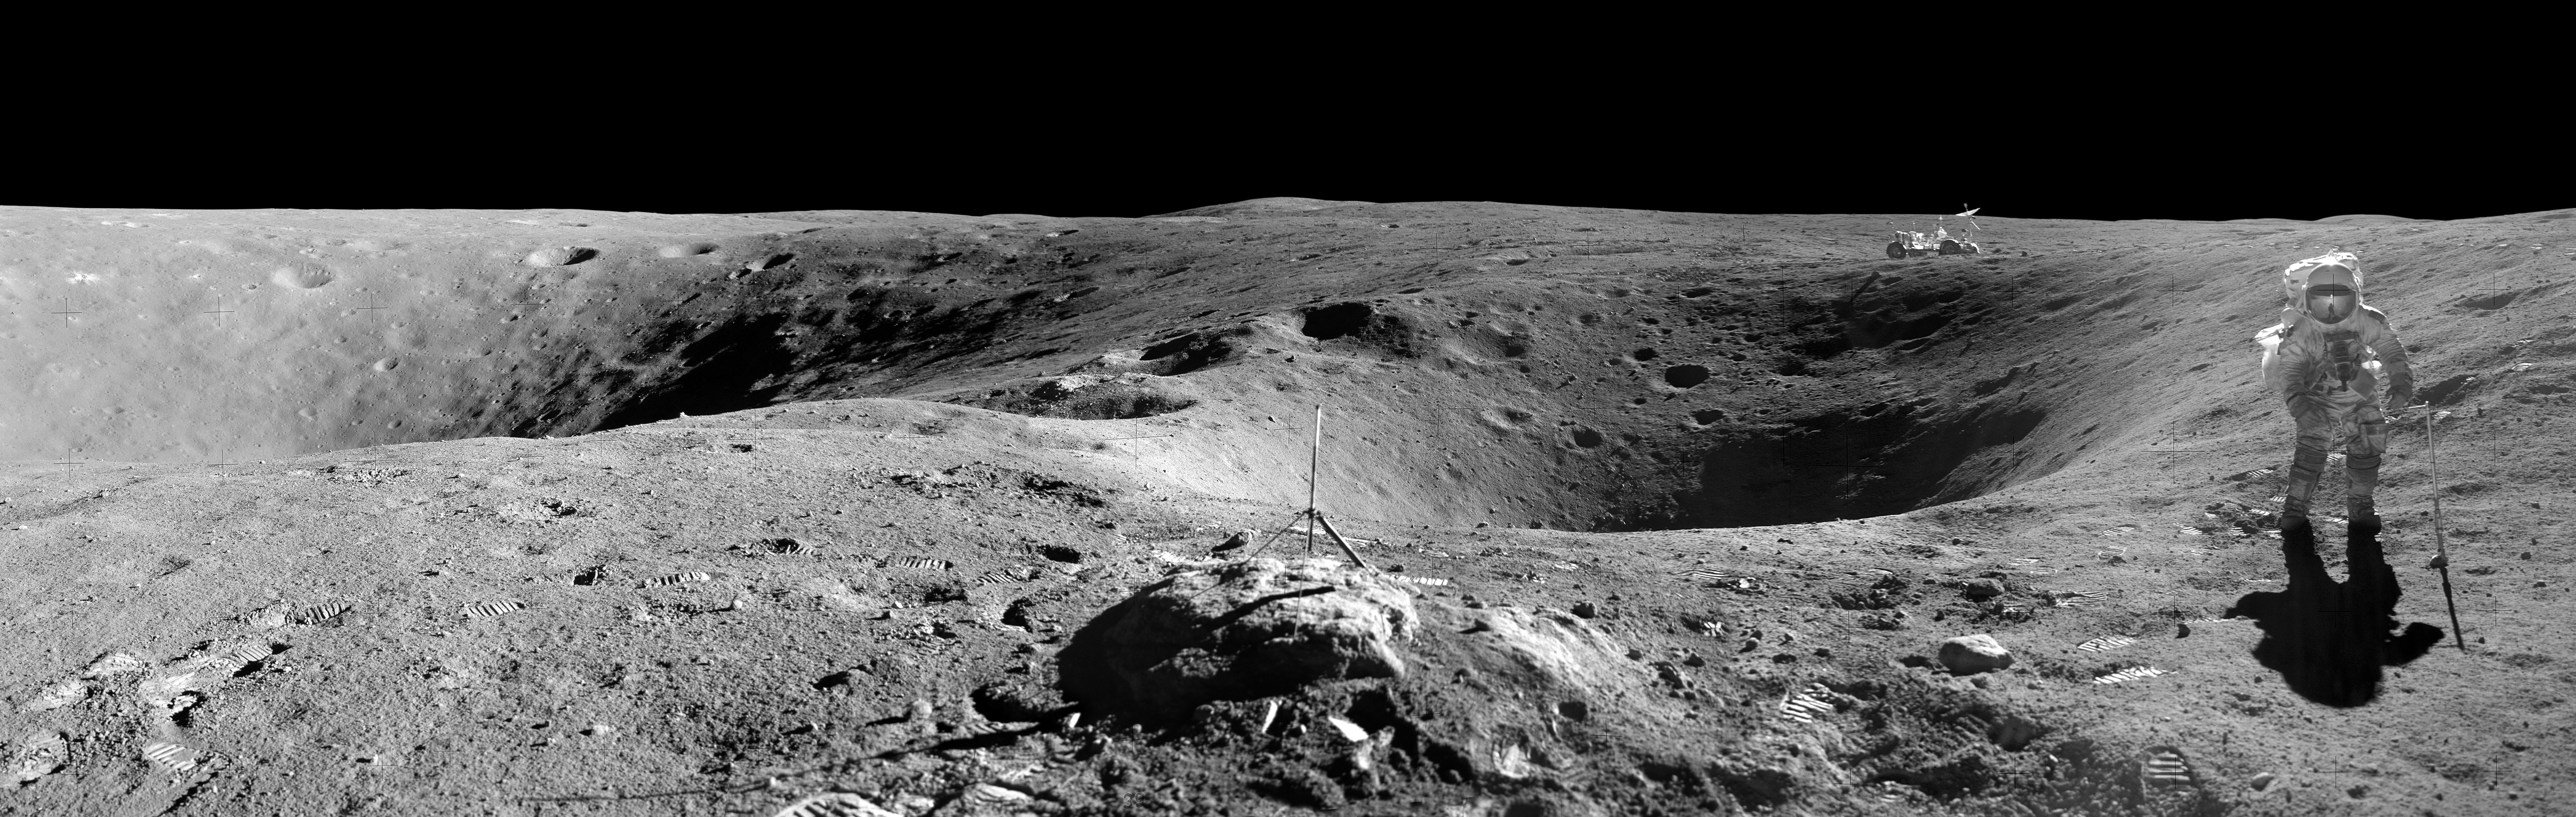 lunar landscape looking at earth - photo #39